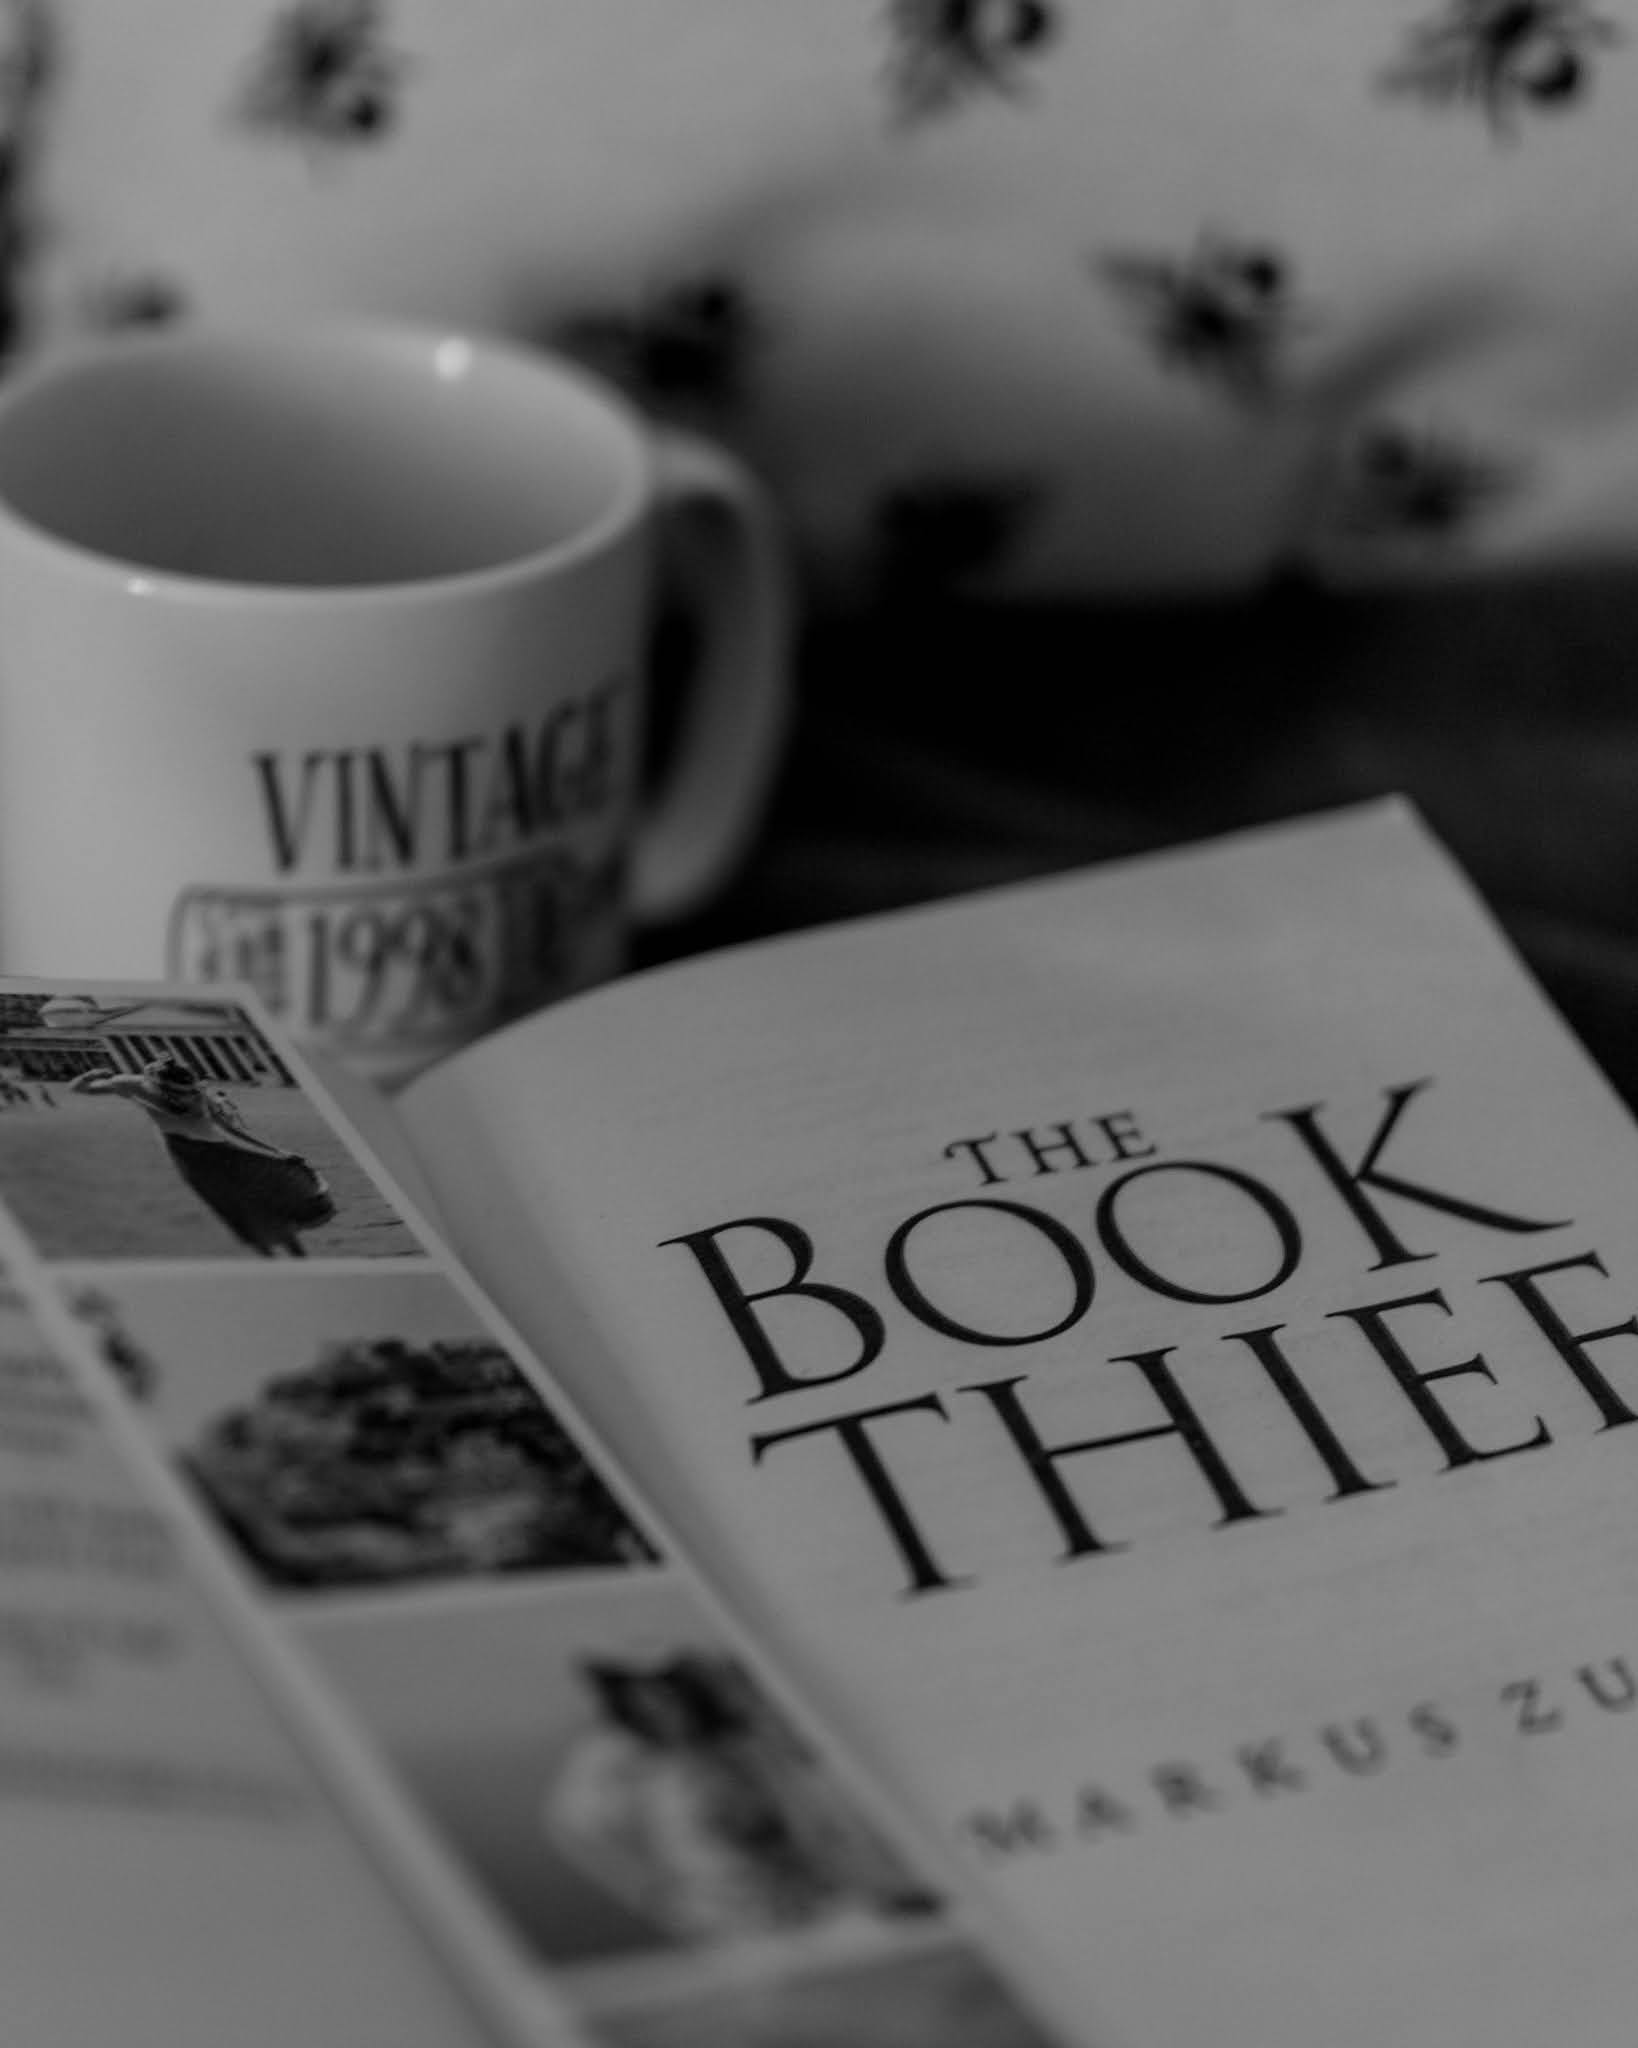 black and white image of open book the book thief by markus zusak with bookmark photostrip and white mug